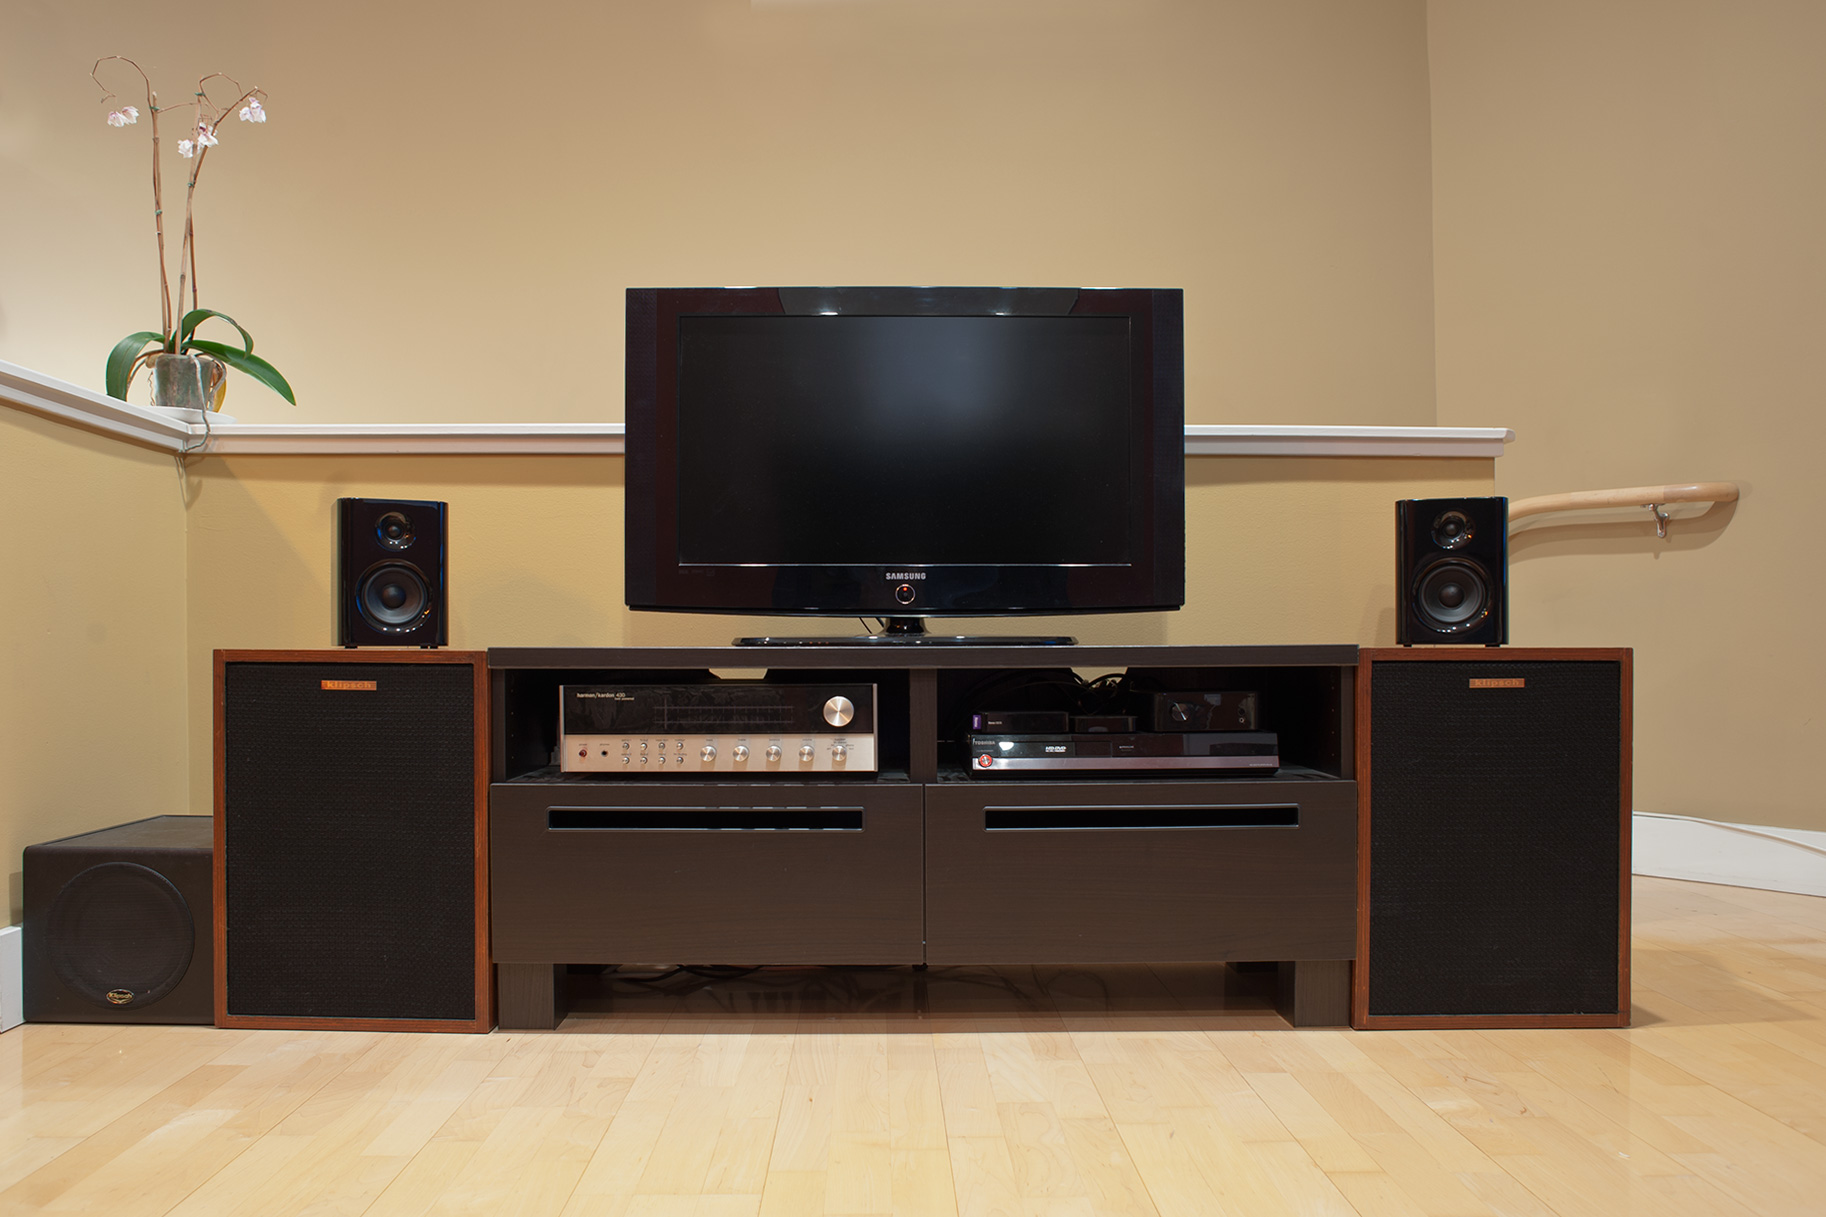 Best Living Room Speakers Under